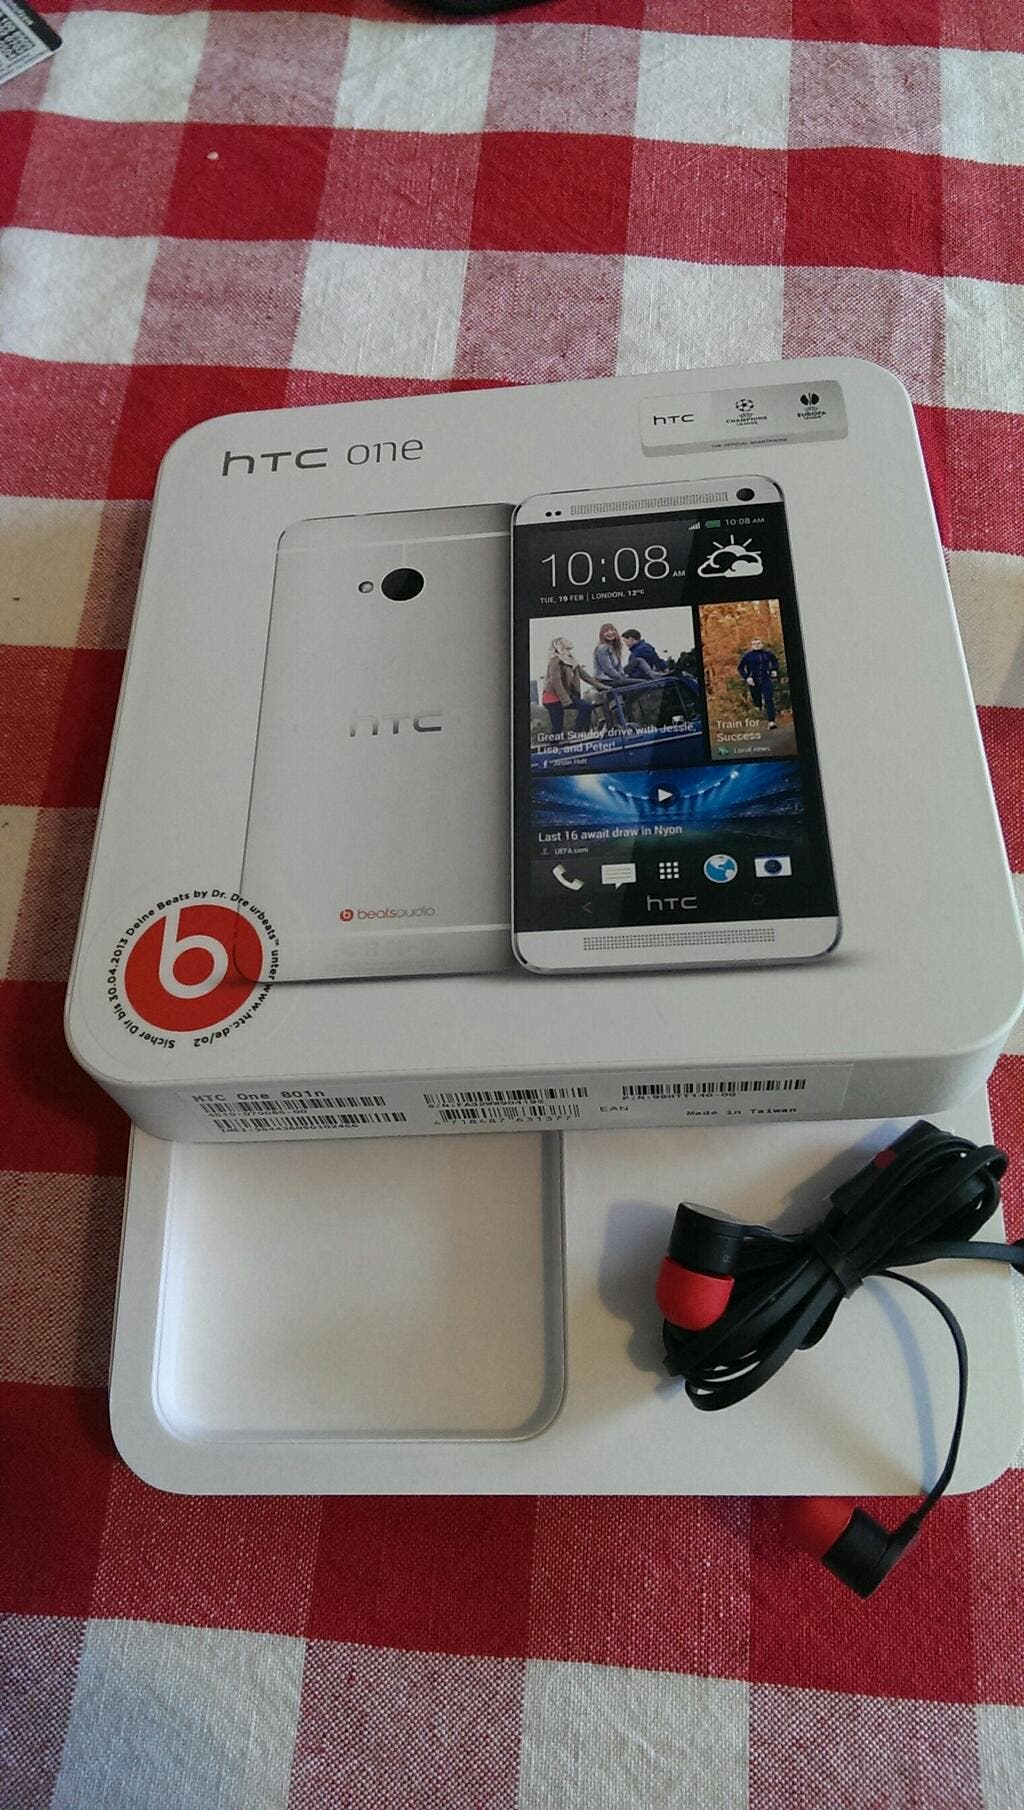 HTC One o2 angekommen